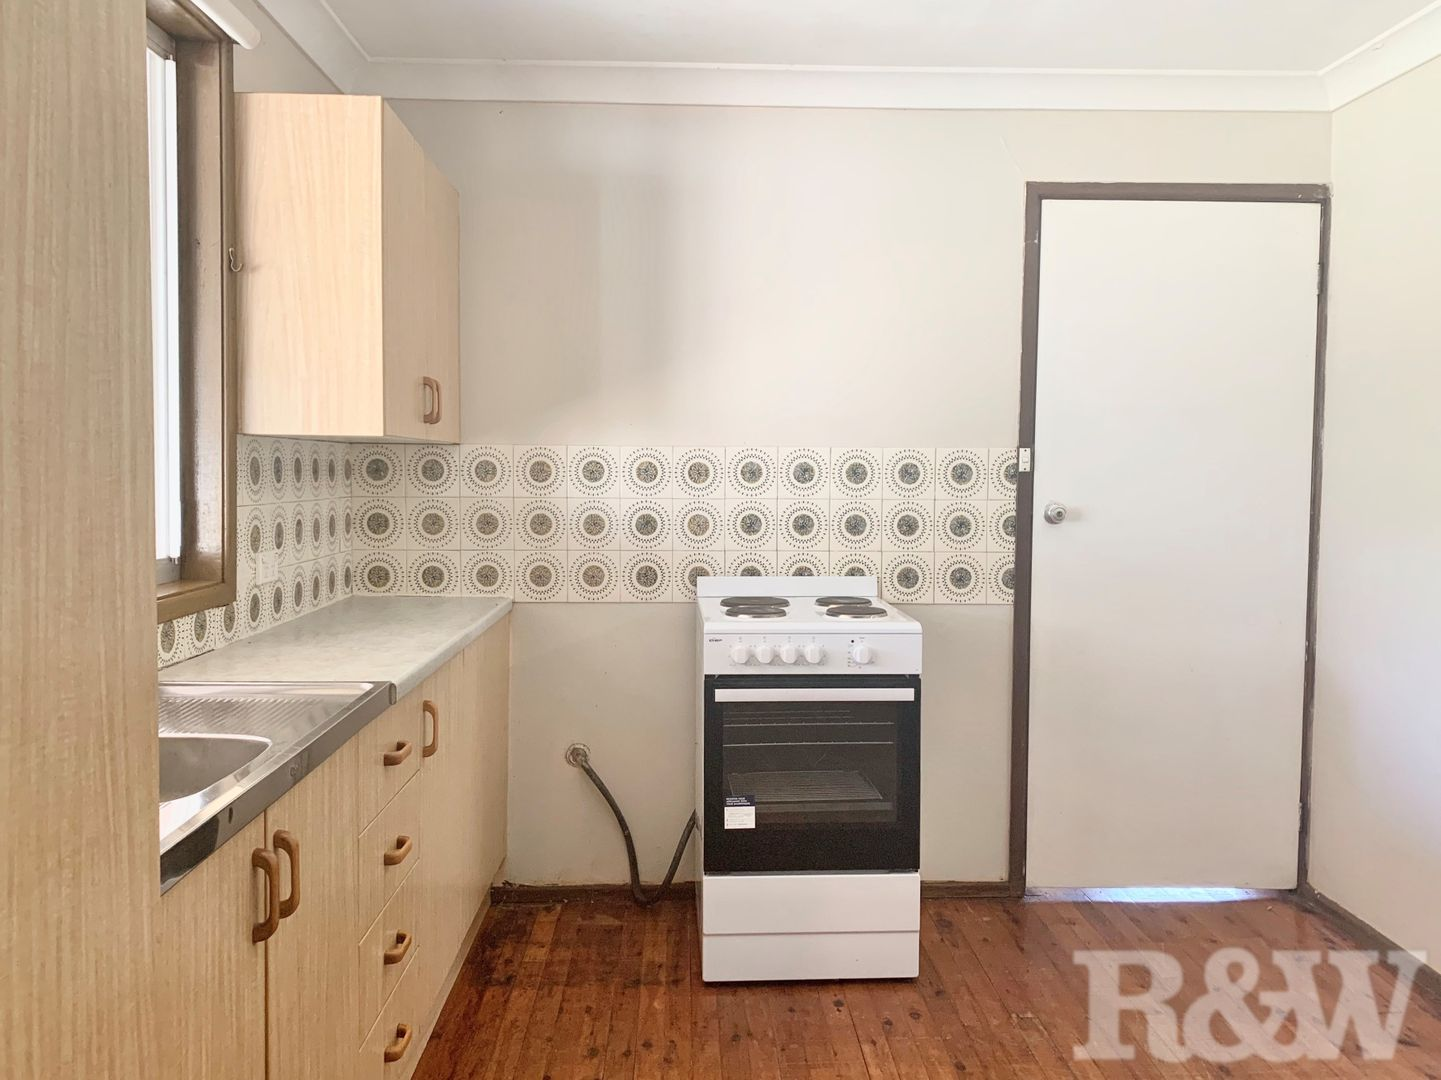 3 Day Place, Prospect NSW 2148, Image 1